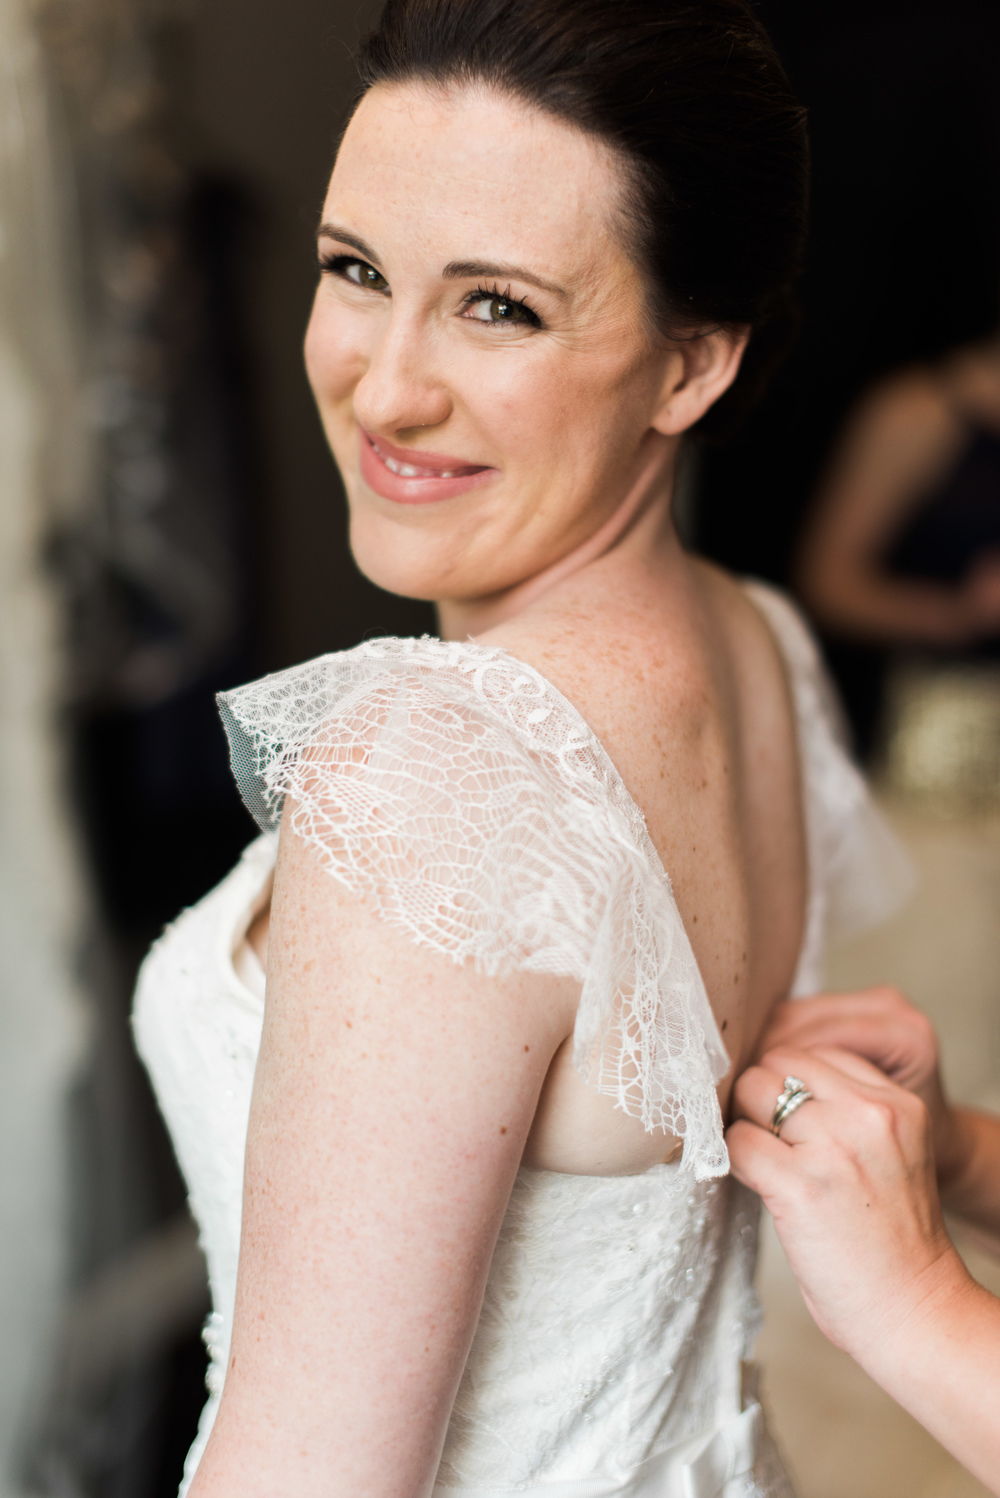 Dana-Fernandez-Photography-Style-Me-Pretty-Houston-Wedding-Photographer-Fine-Art-Film-Station-3-venue-4.jpg